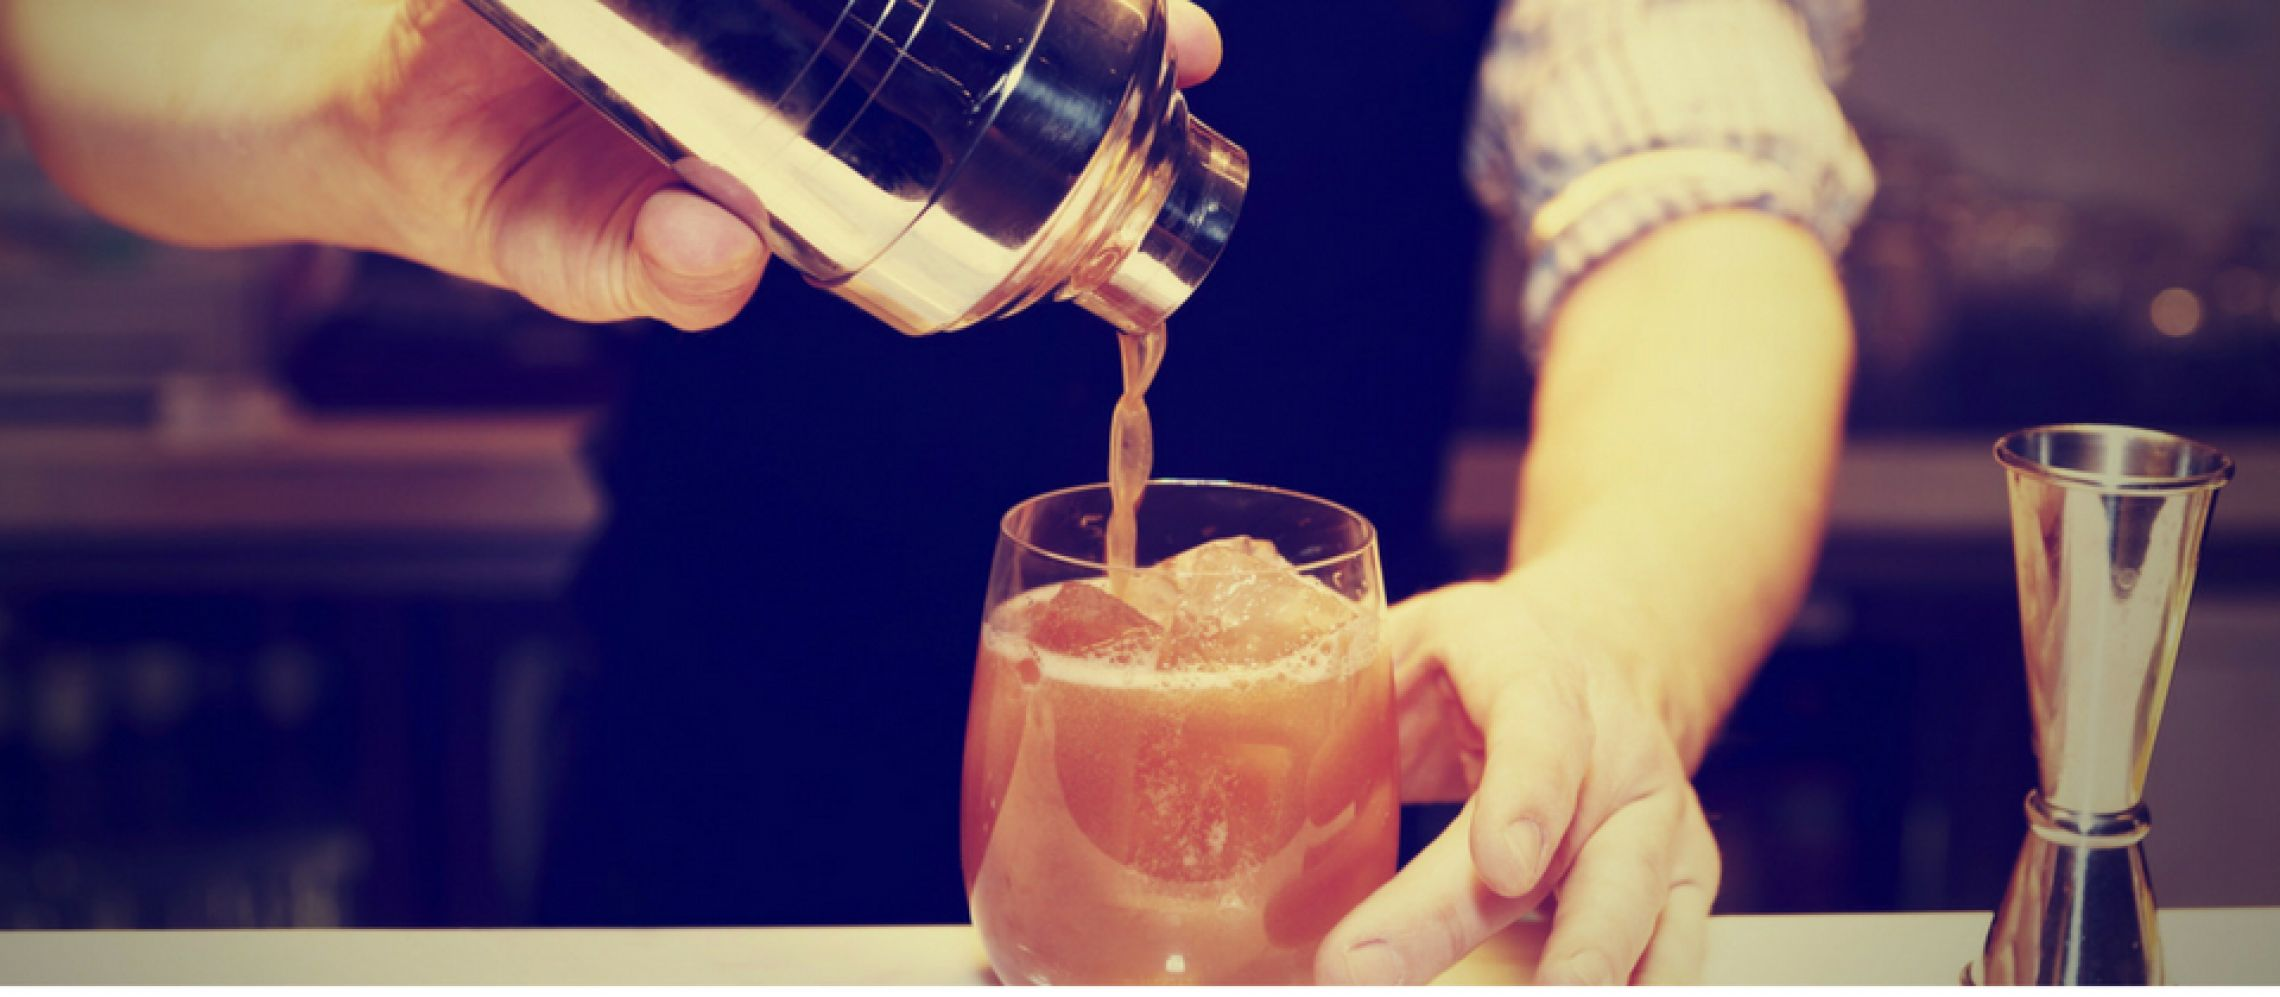 Photo for: 3 Things Bartenders Look for in New Brands